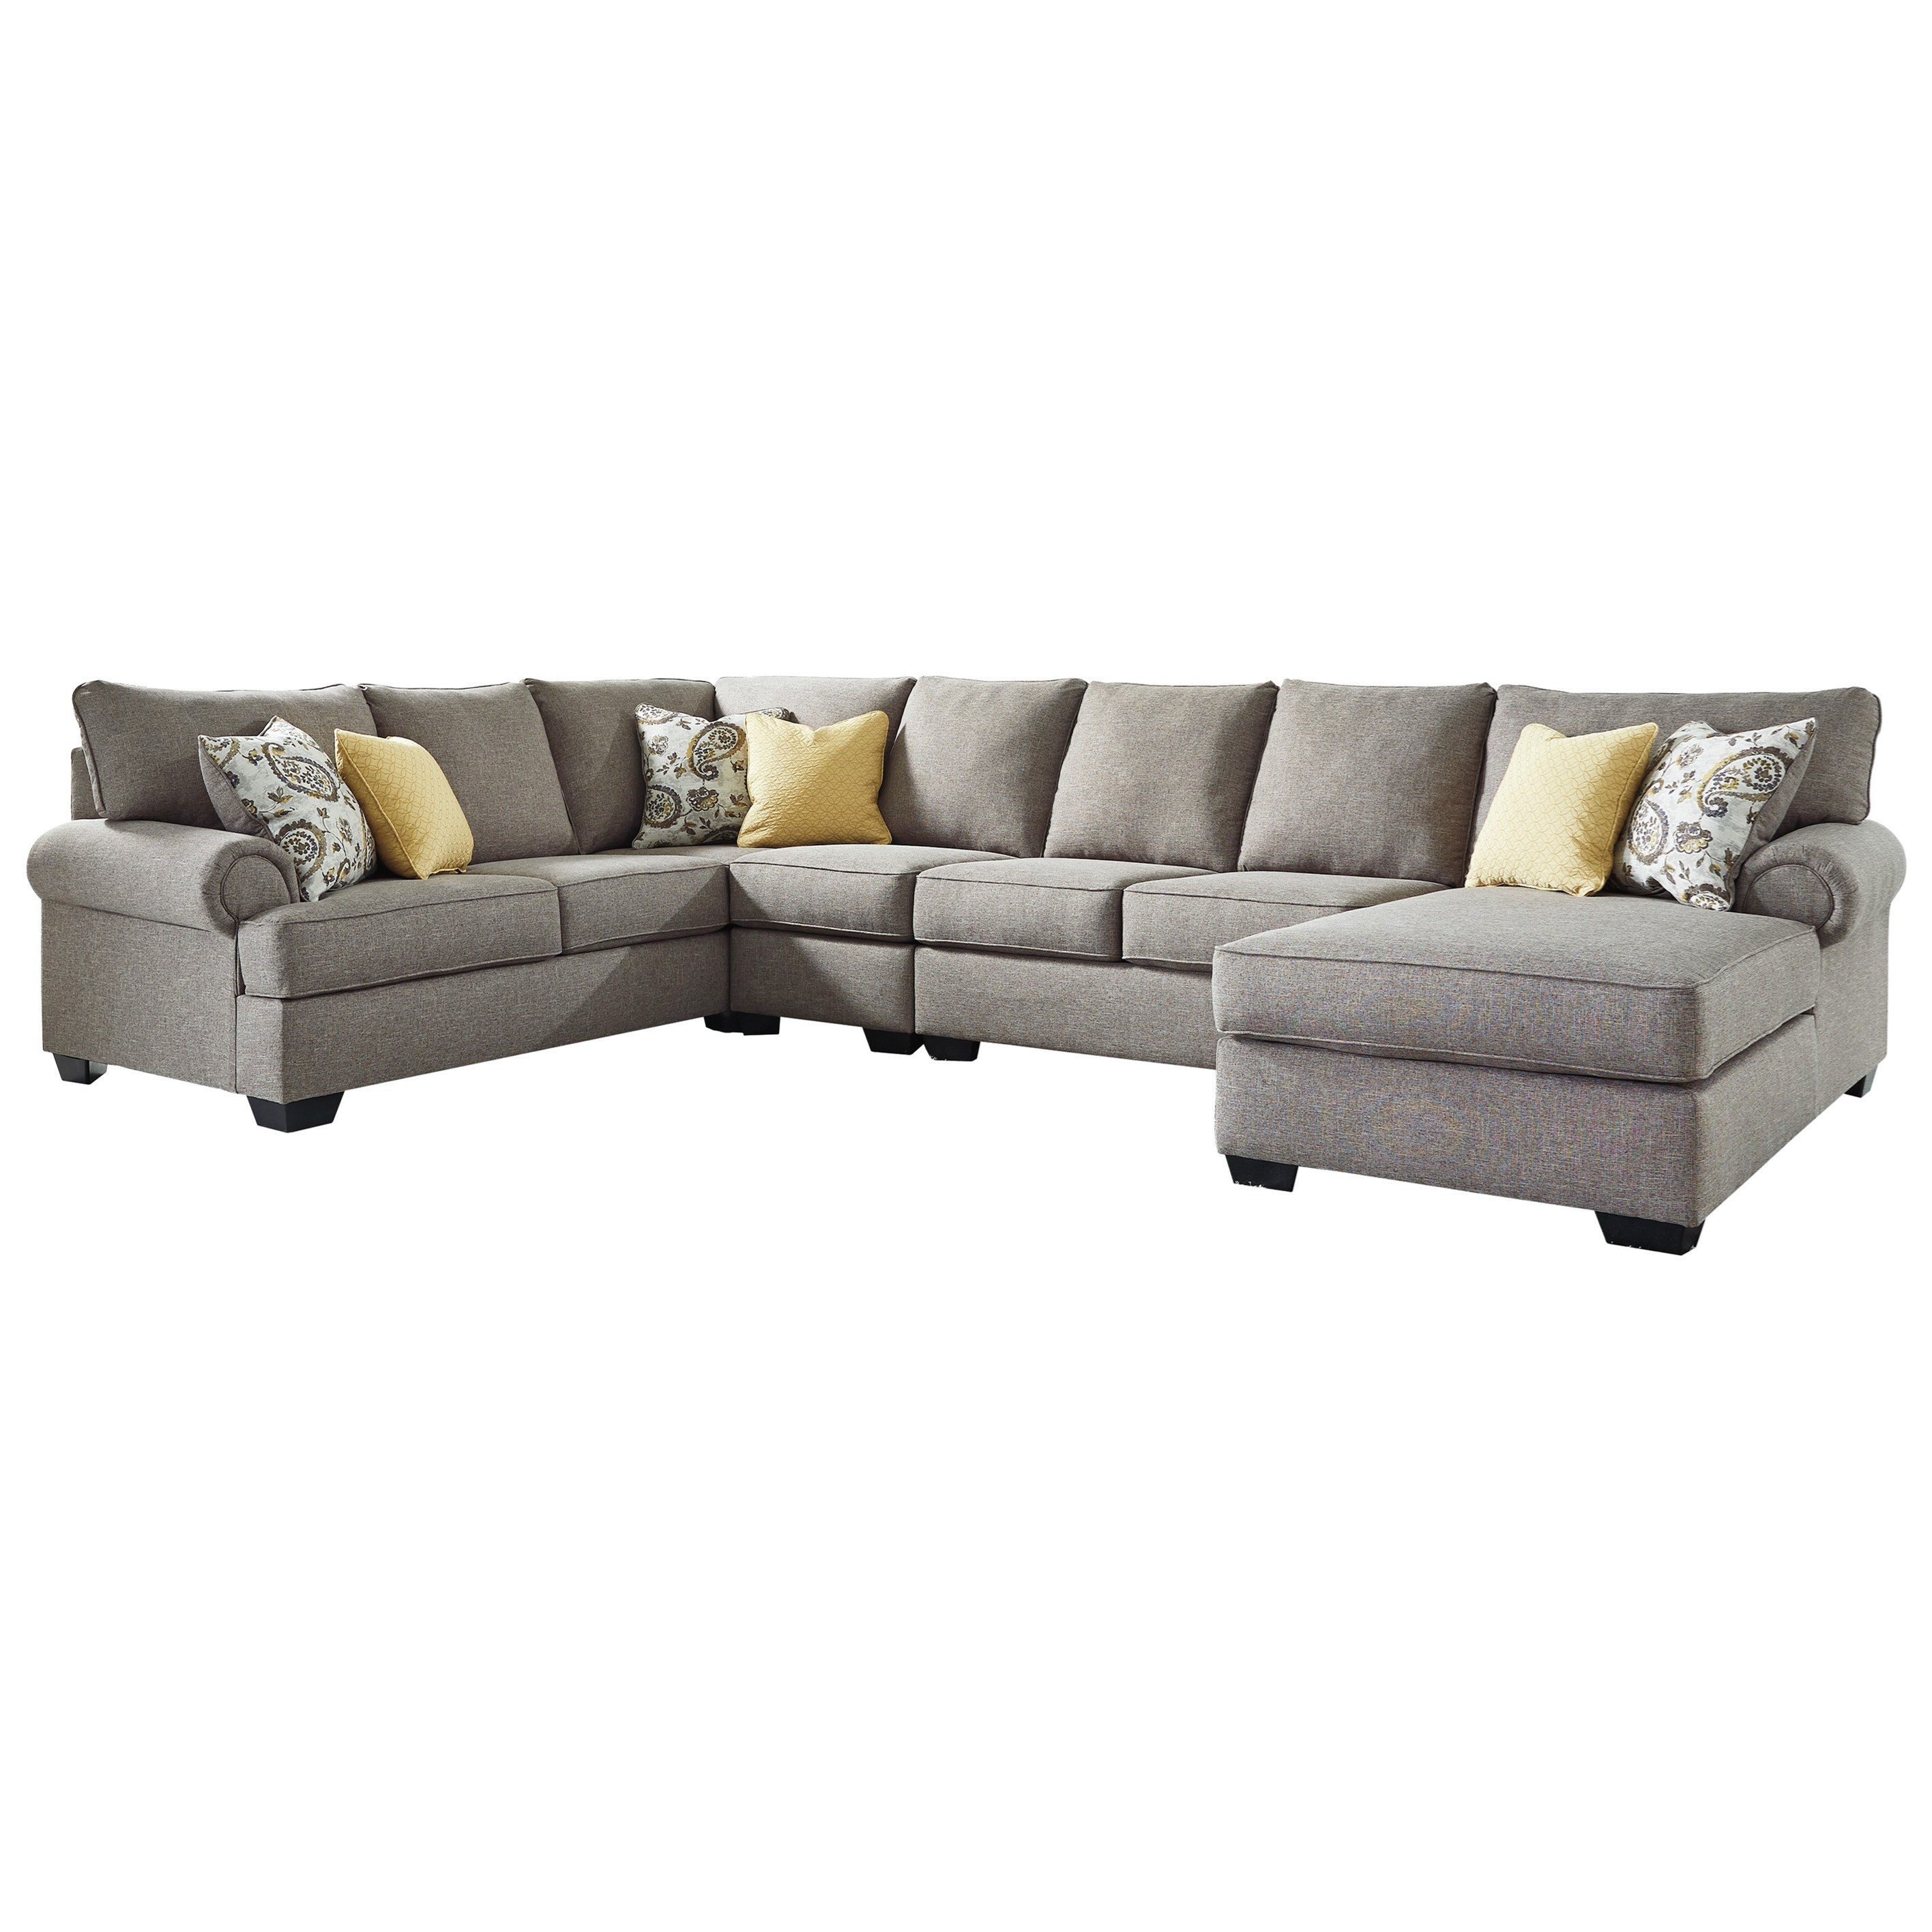 4 piece recliner sectional sofa colorful sofas for sale benchcraft by ashley renchen casual